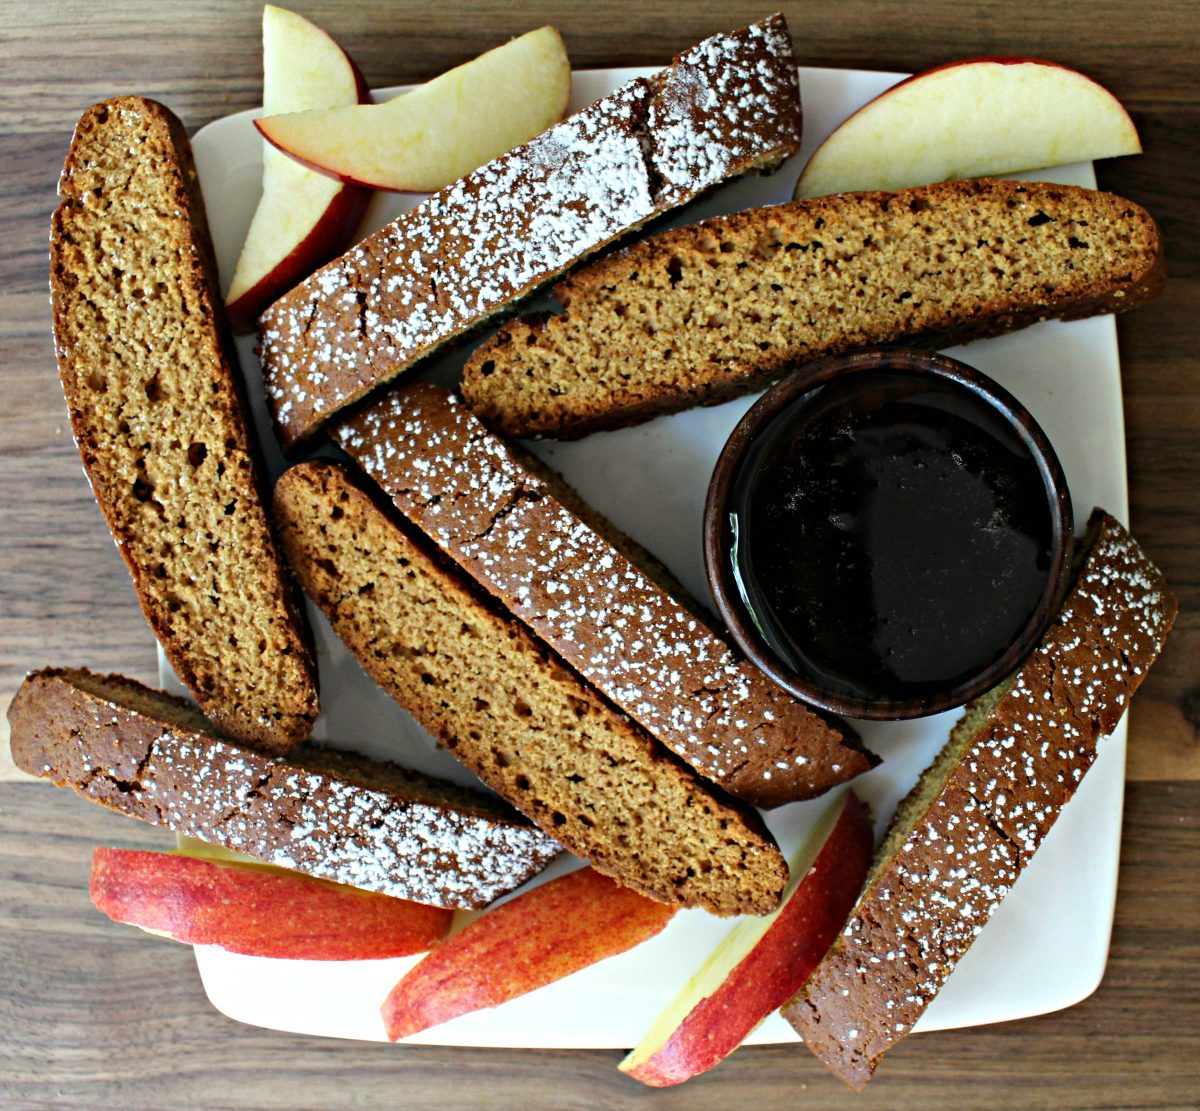 Overhead view of biscotti, apple slices, and a bowl of honey on a white plate.